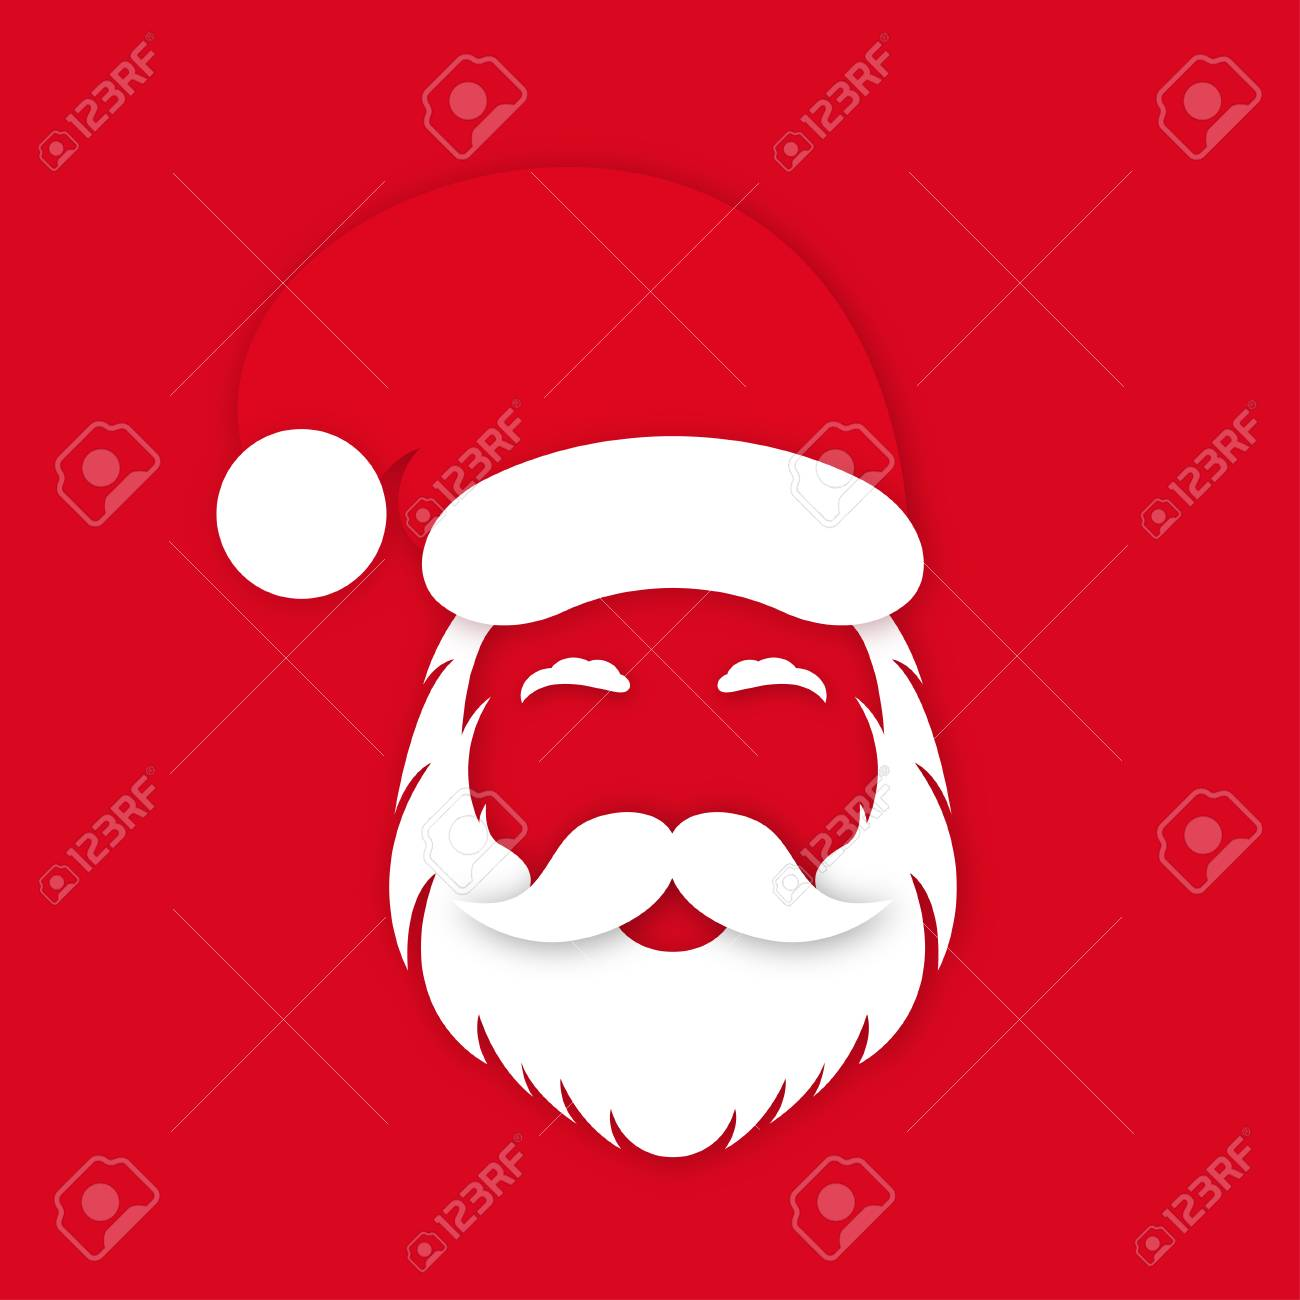 Santa Claus in hat on red background. Santa Claus's face silhouette with lush beard, mustaches and eyebrows. Vector - 127273320